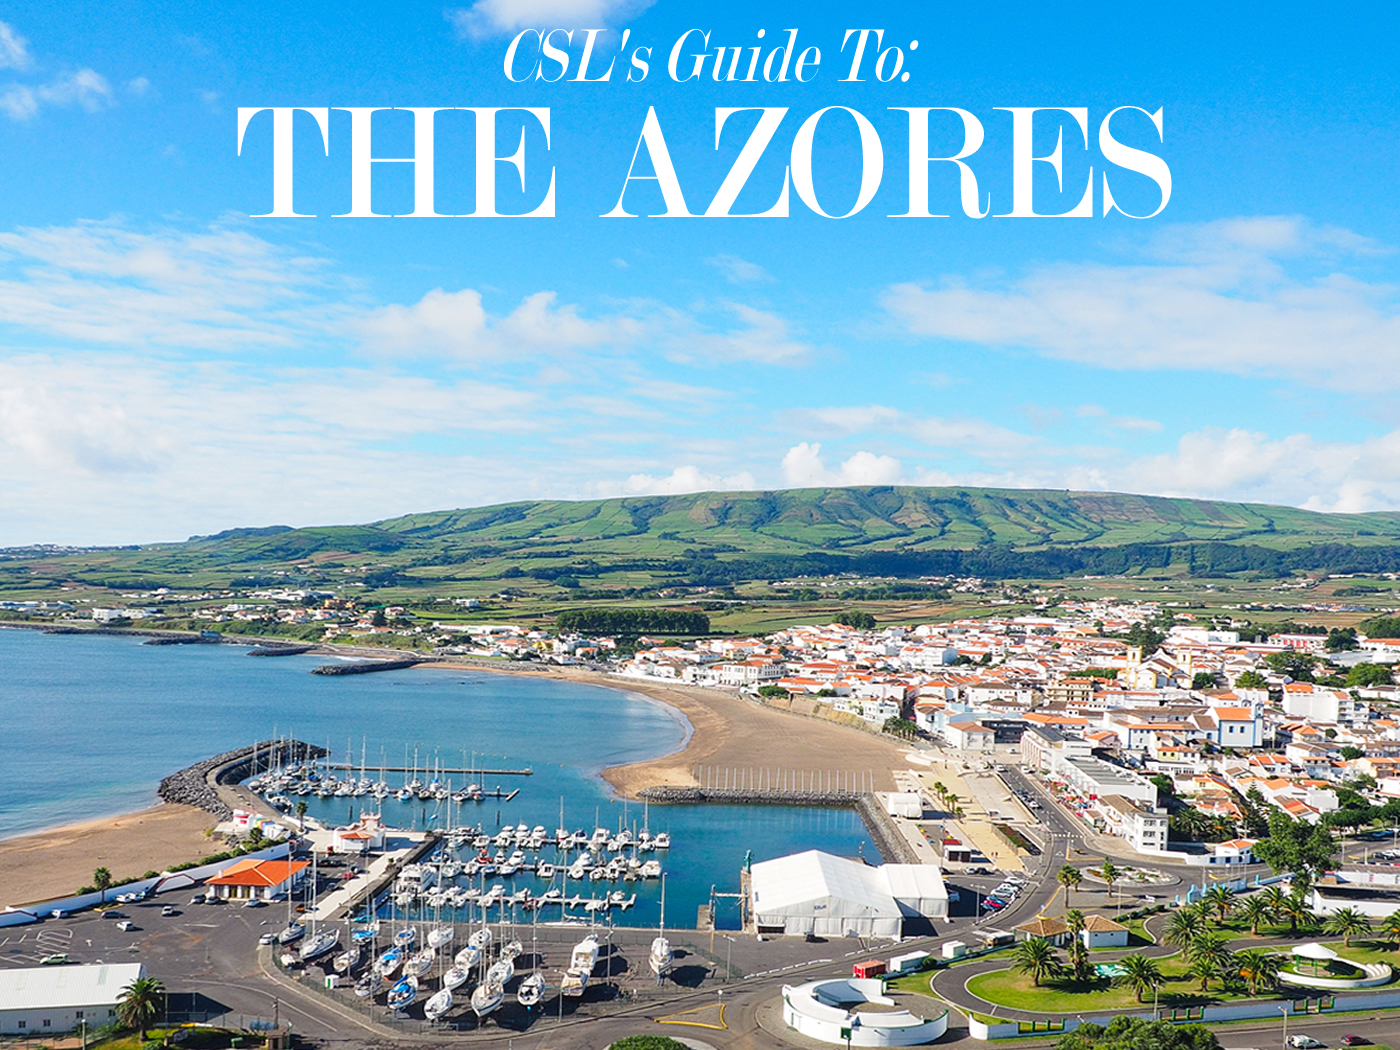 Getting Between Azores Islands